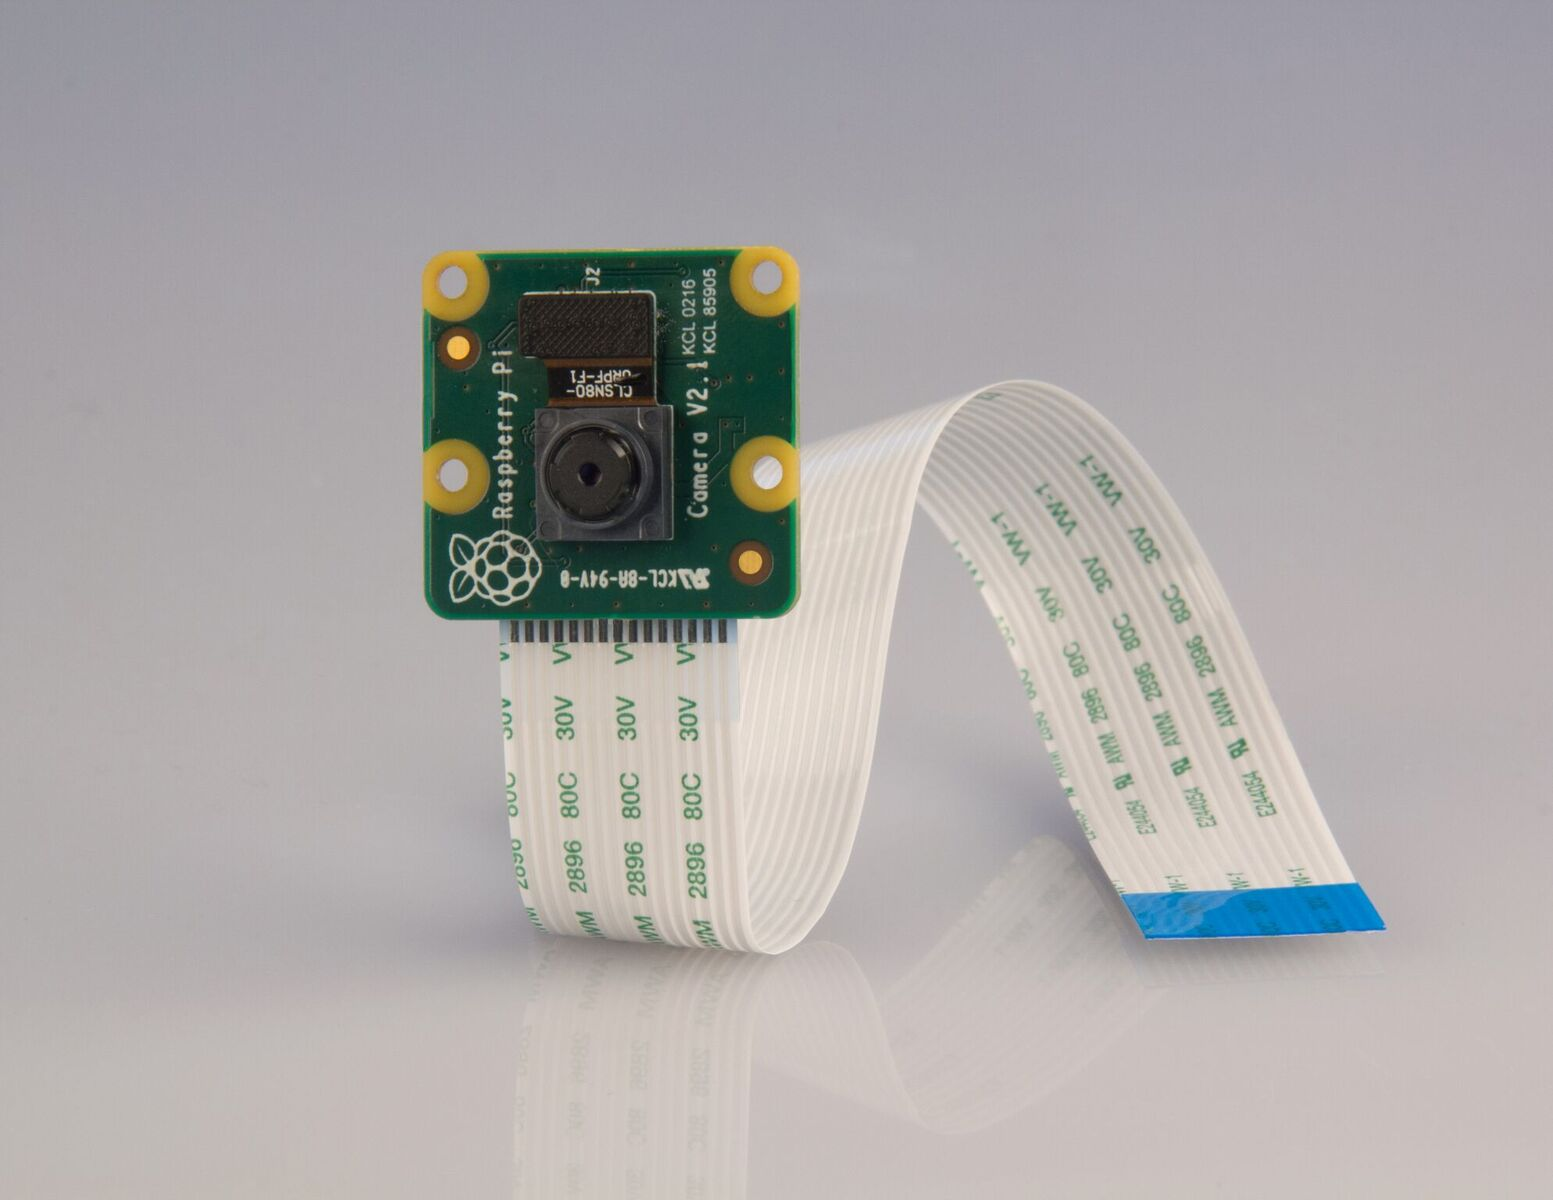 New 8-megapixel camera board on sale at $25 - Raspberry Pi